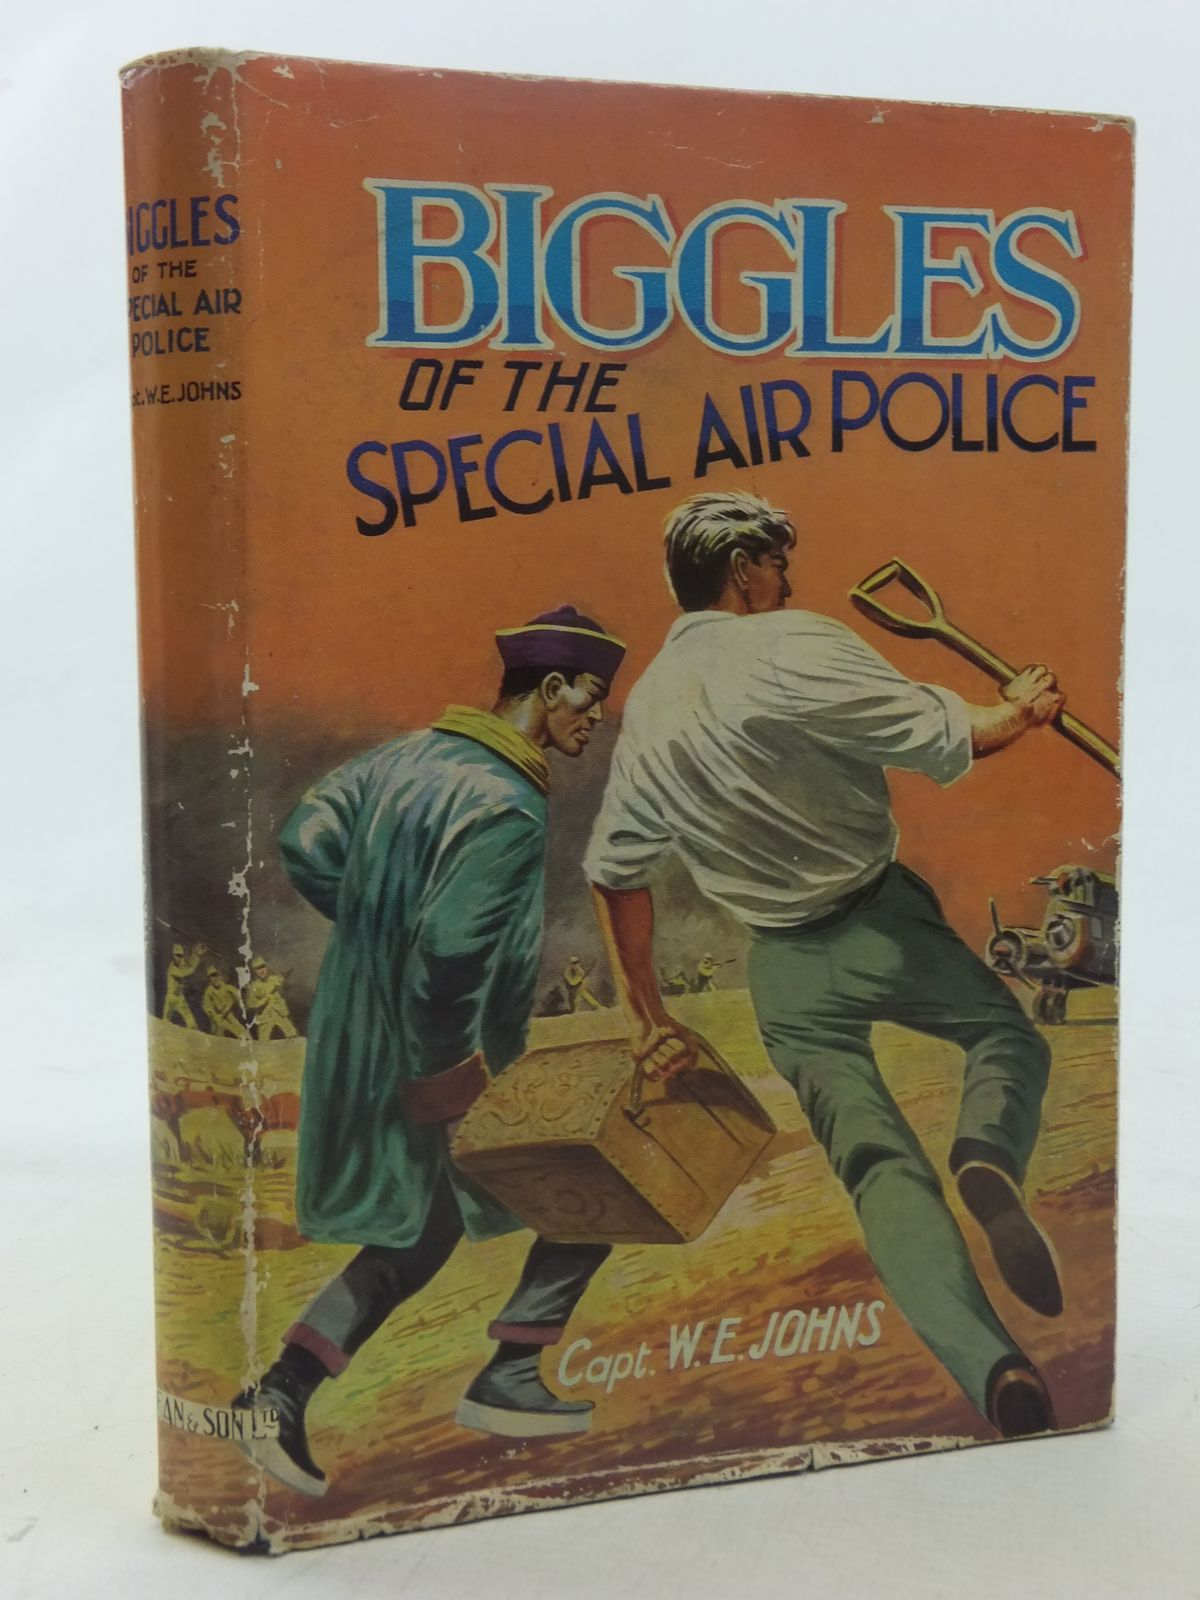 Photo of BIGGLES OF THE SPECIAL AIR POLICE written by Johns, W.E. published by Dean & Son Ltd. (STOCK CODE: 2117417)  for sale by Stella & Rose's Books